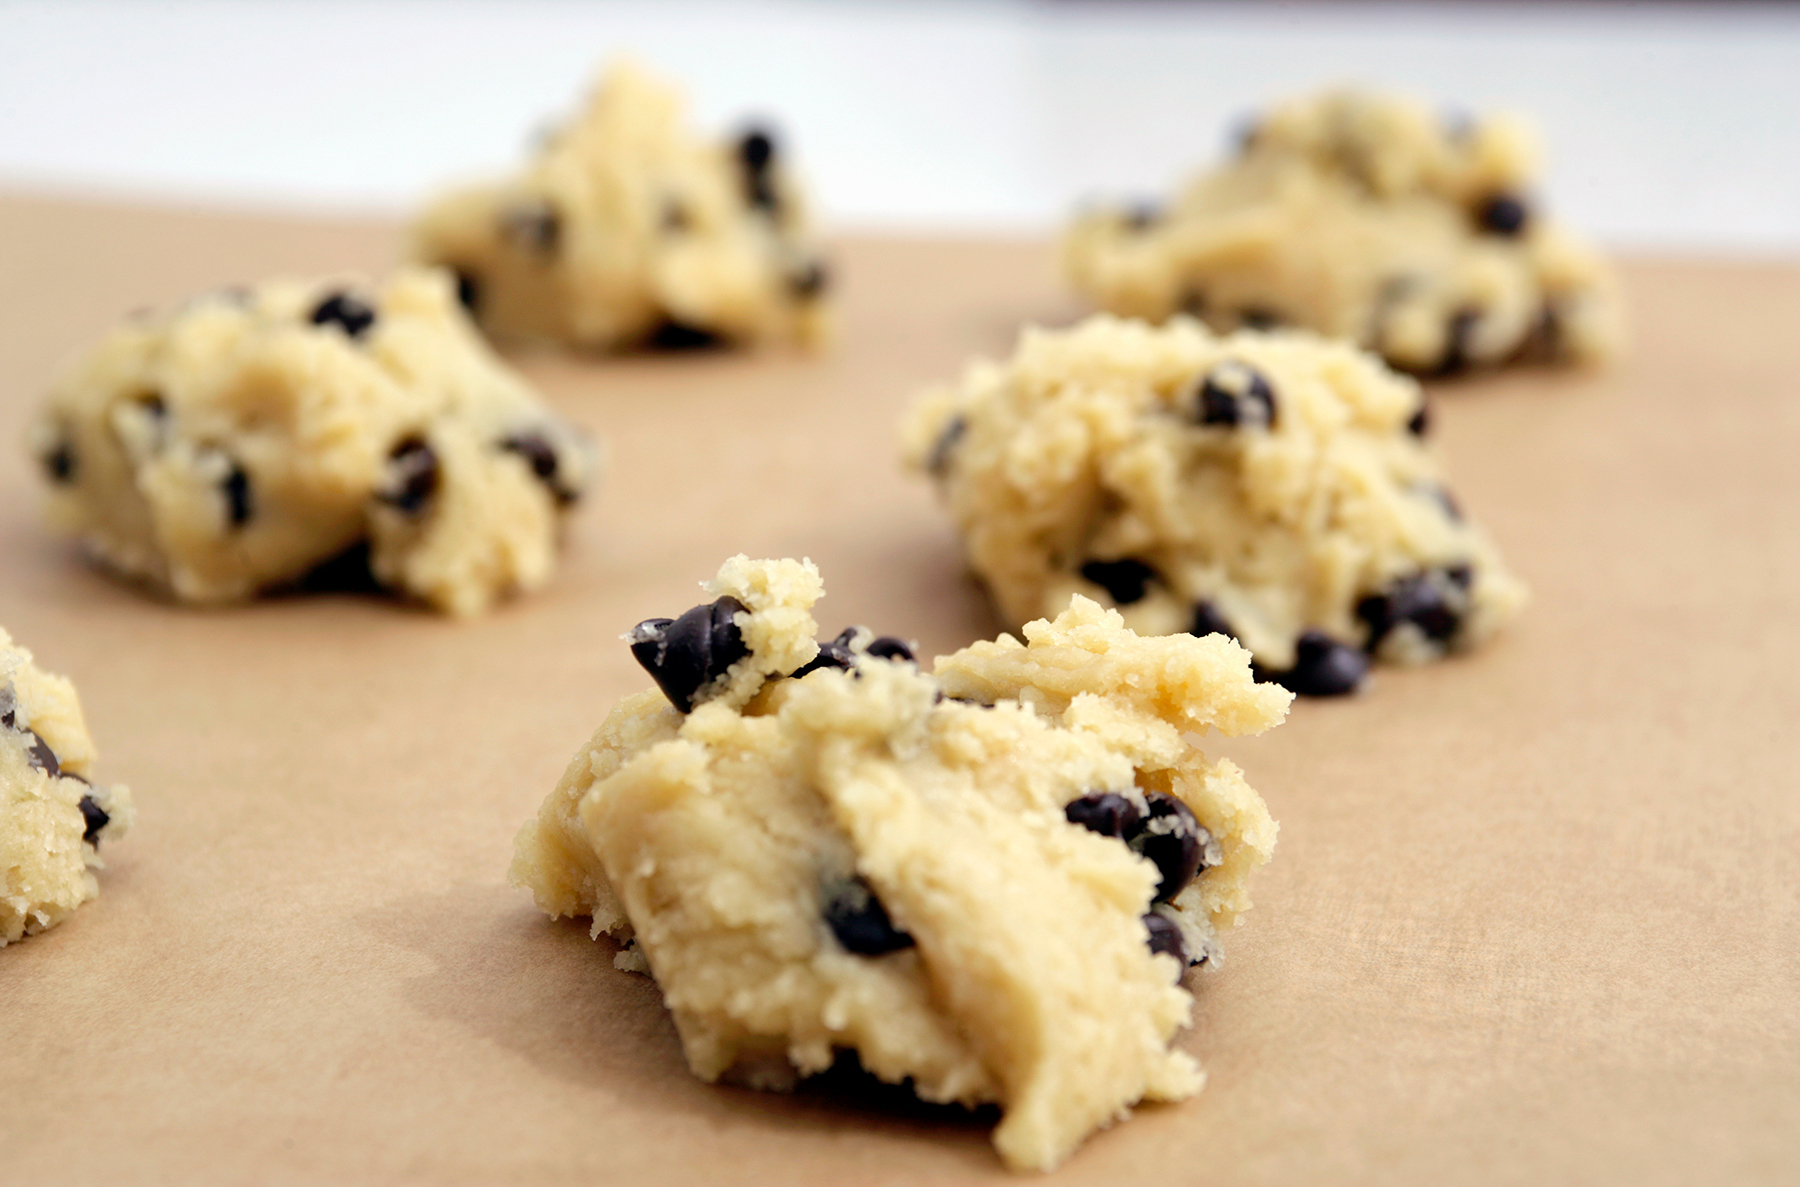 Refrigerated Cookie Dough Ready for the Oven